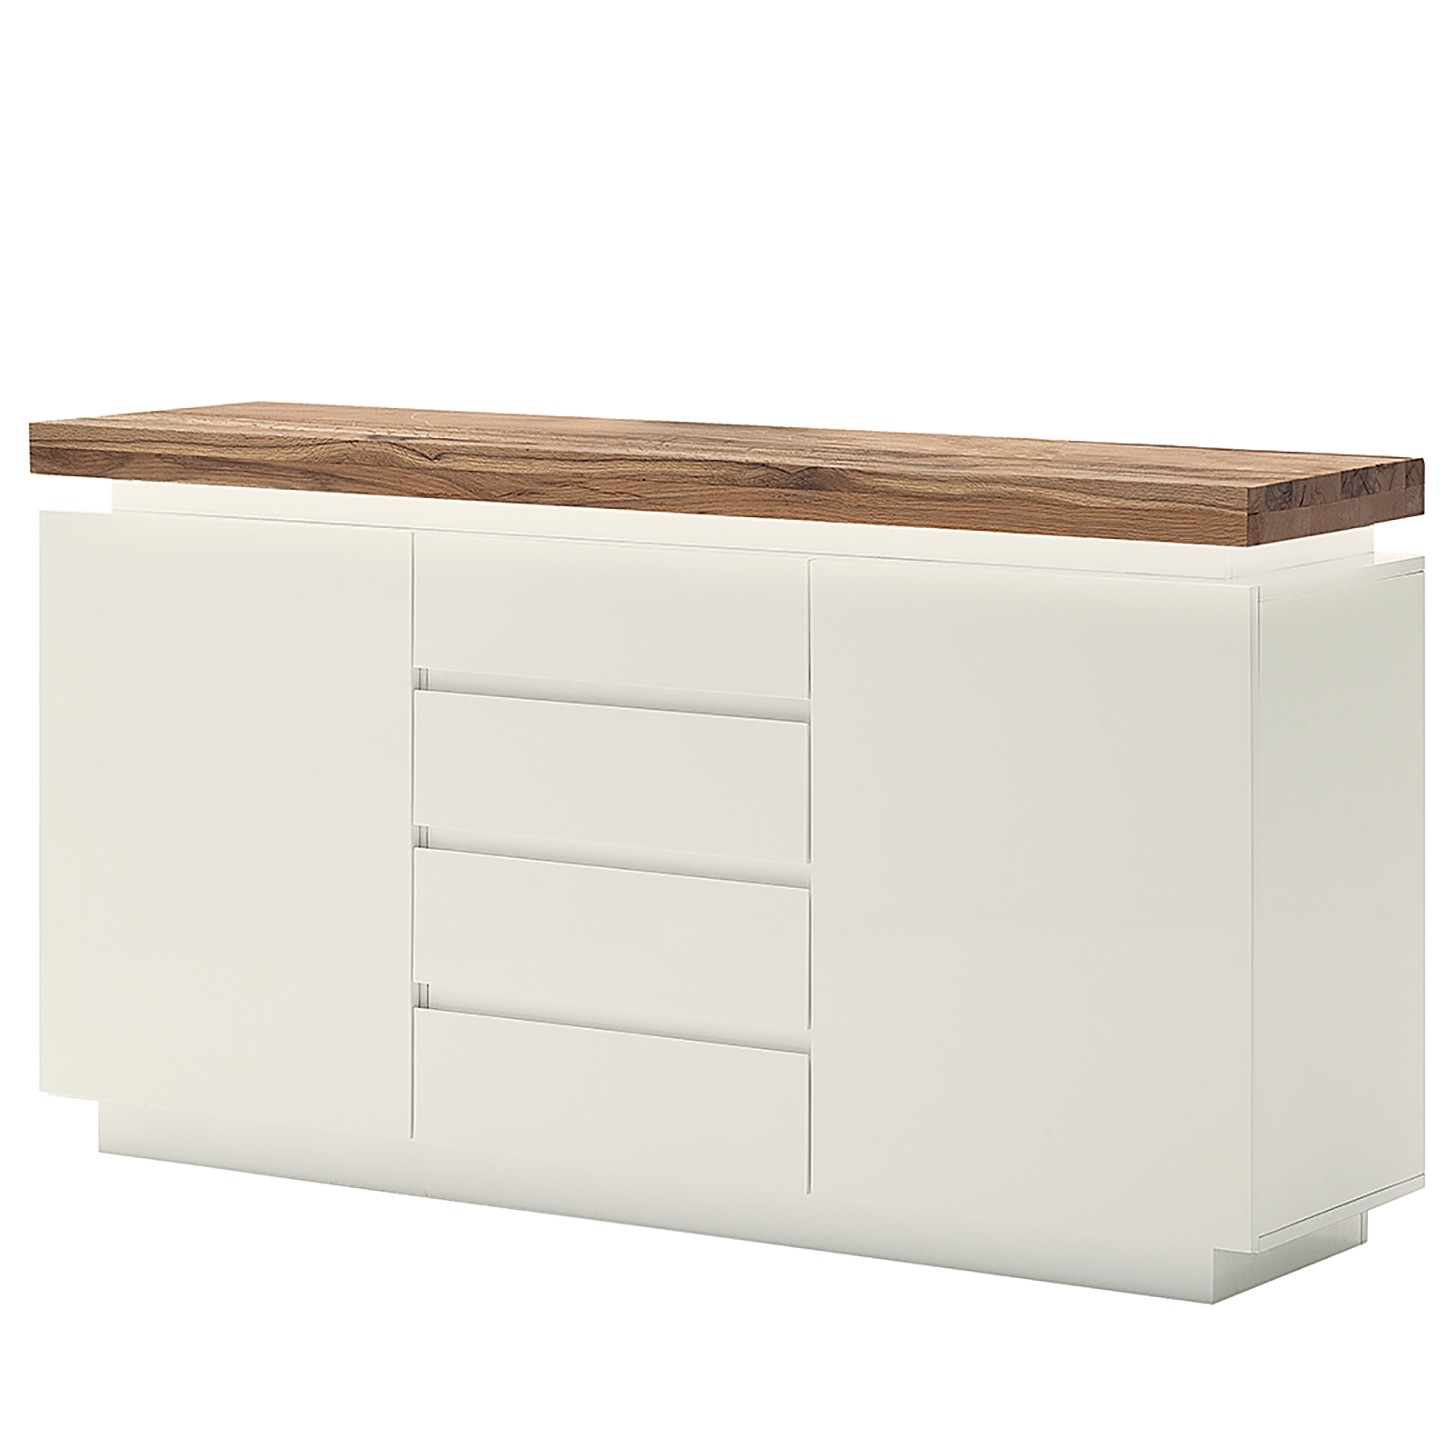 Sideboard Roble I (inkl. Beleuchtung)